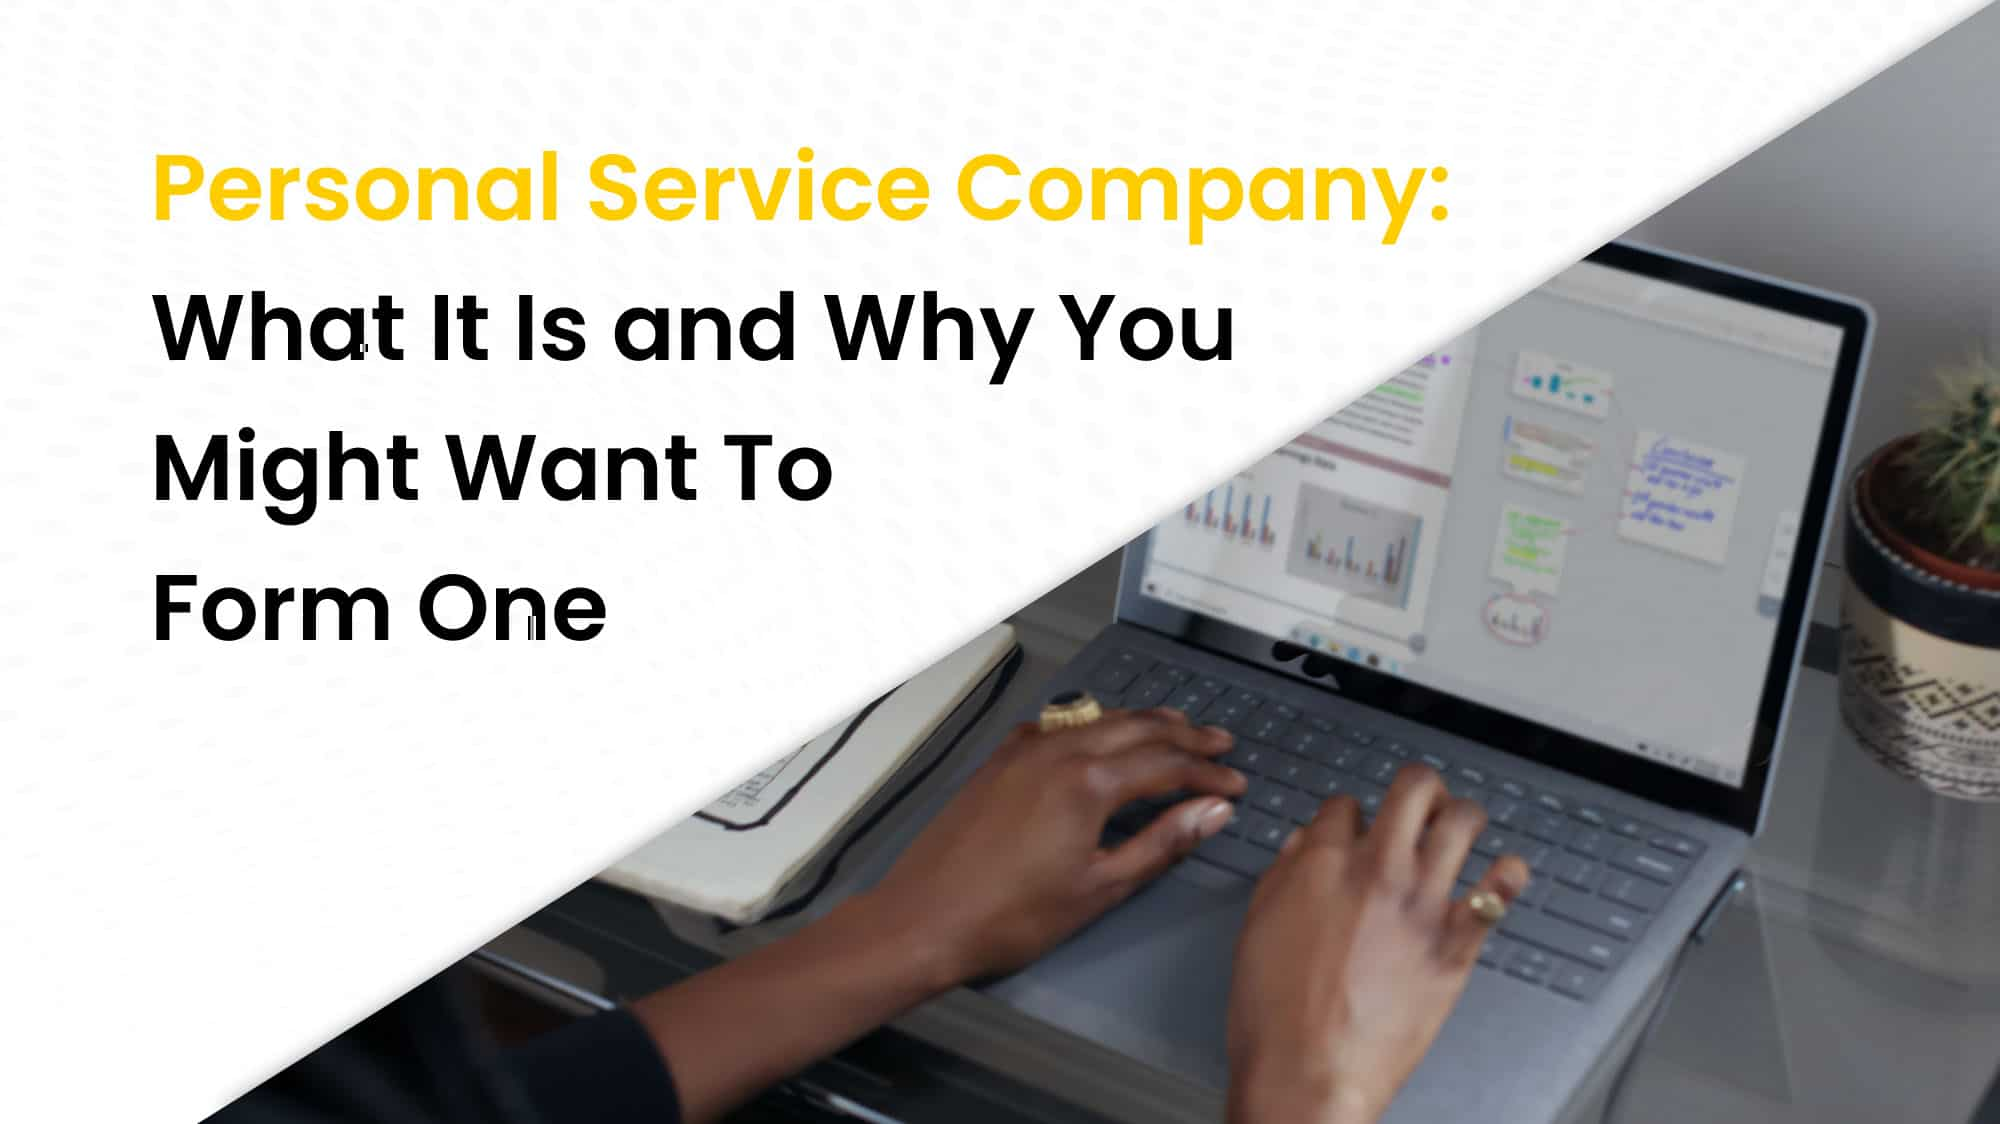 Personal service company what it is and why you might want to form one